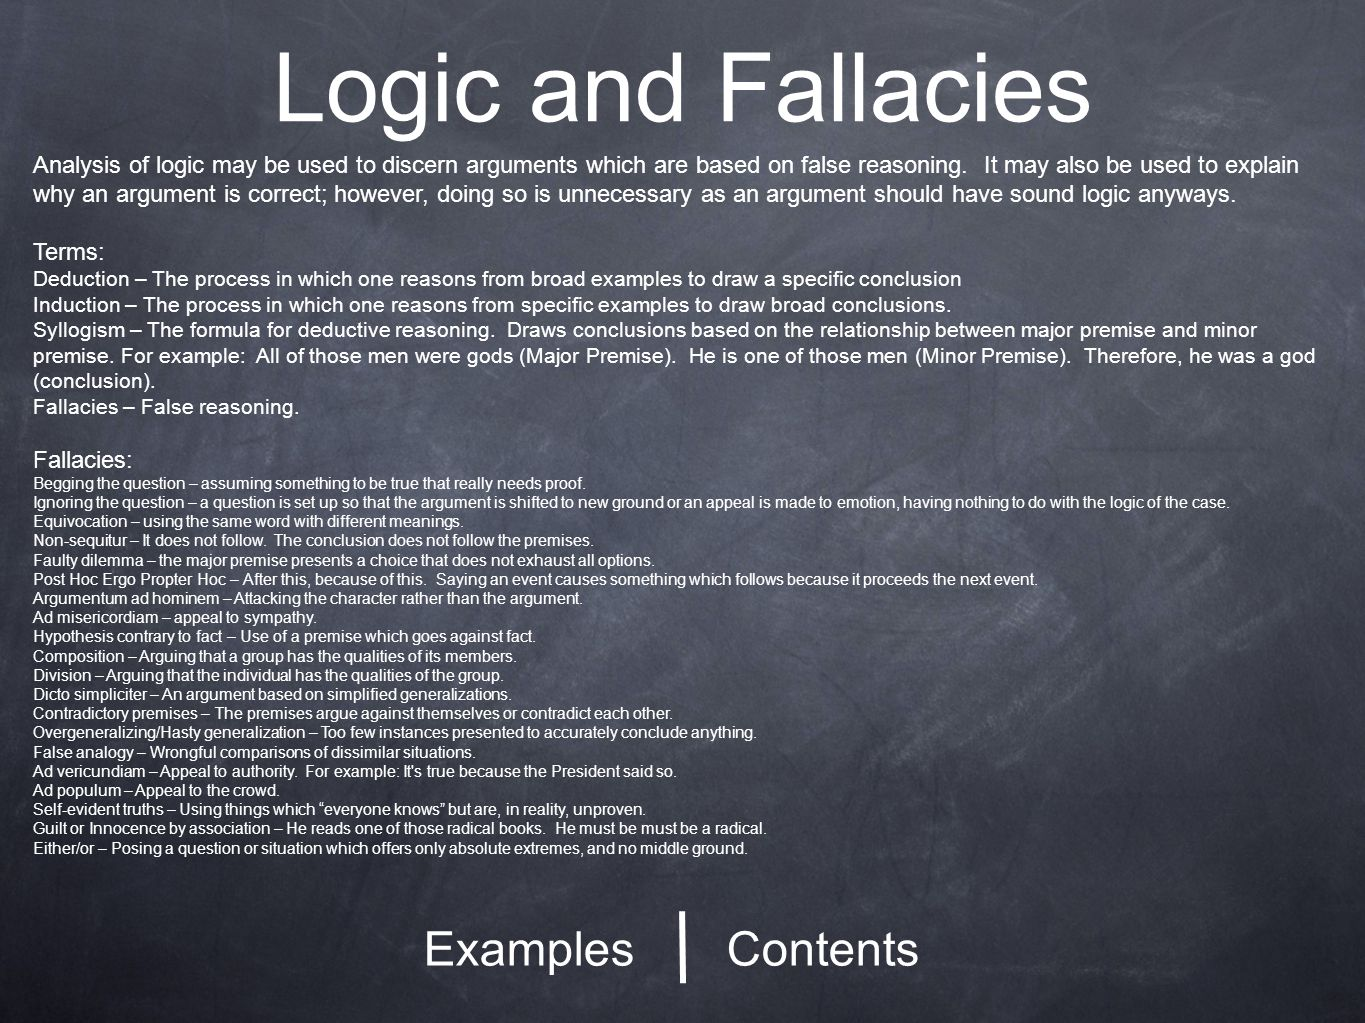 Logic and Fallacies ContentsExamples Analysis of logic may be used to discern arguments which are based on false reasoning.